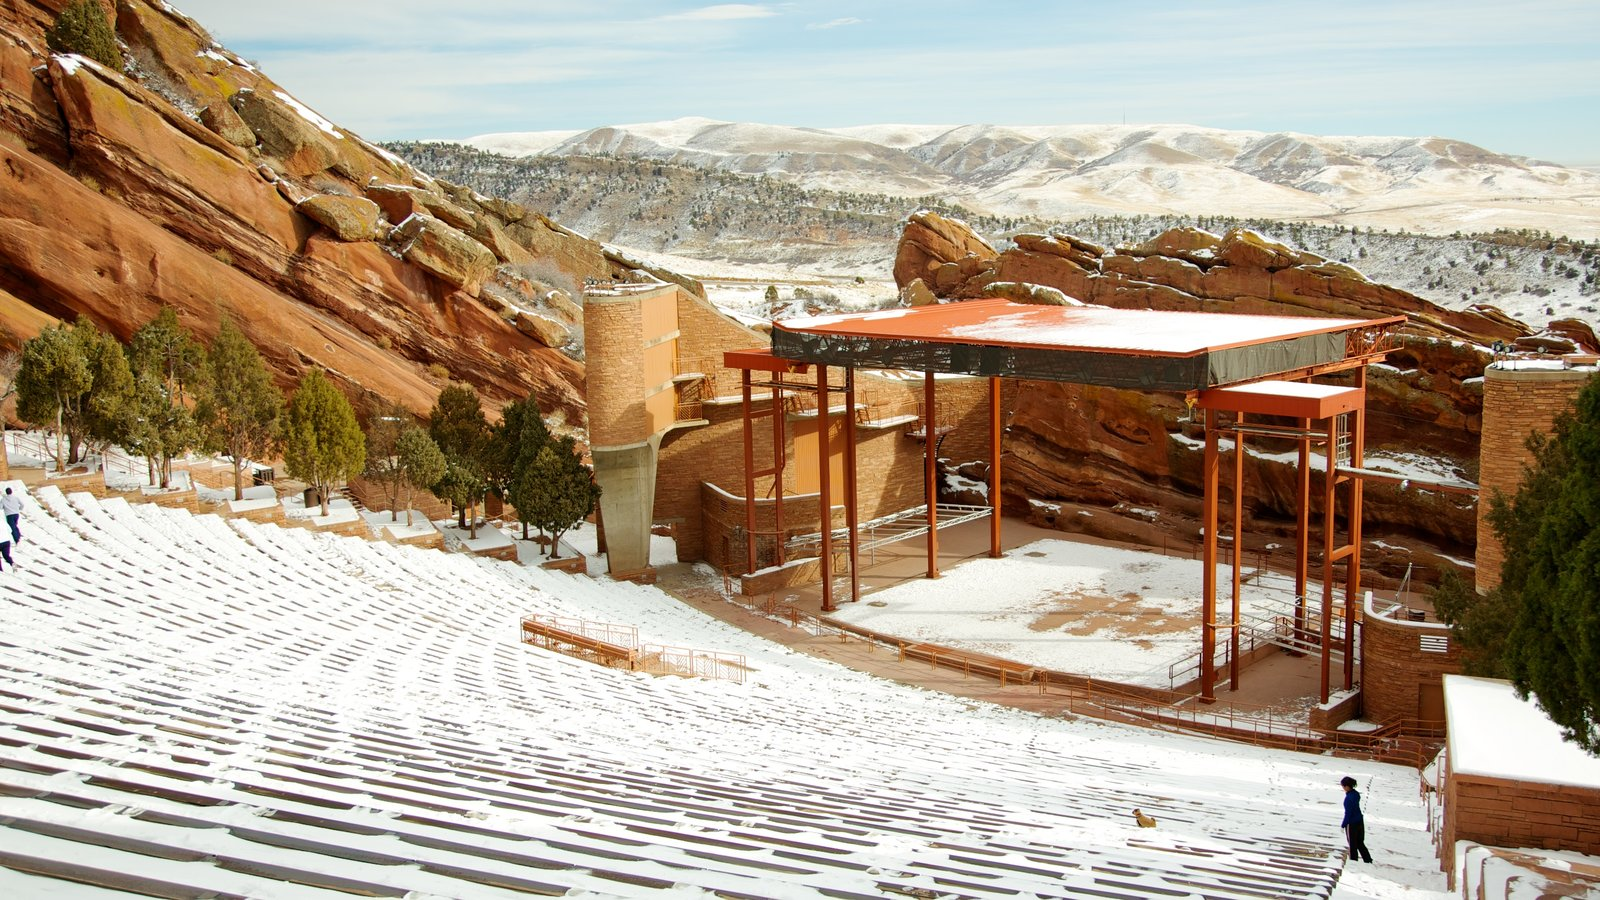 Red Rocks Amphitheater featuring theater scenes and snow